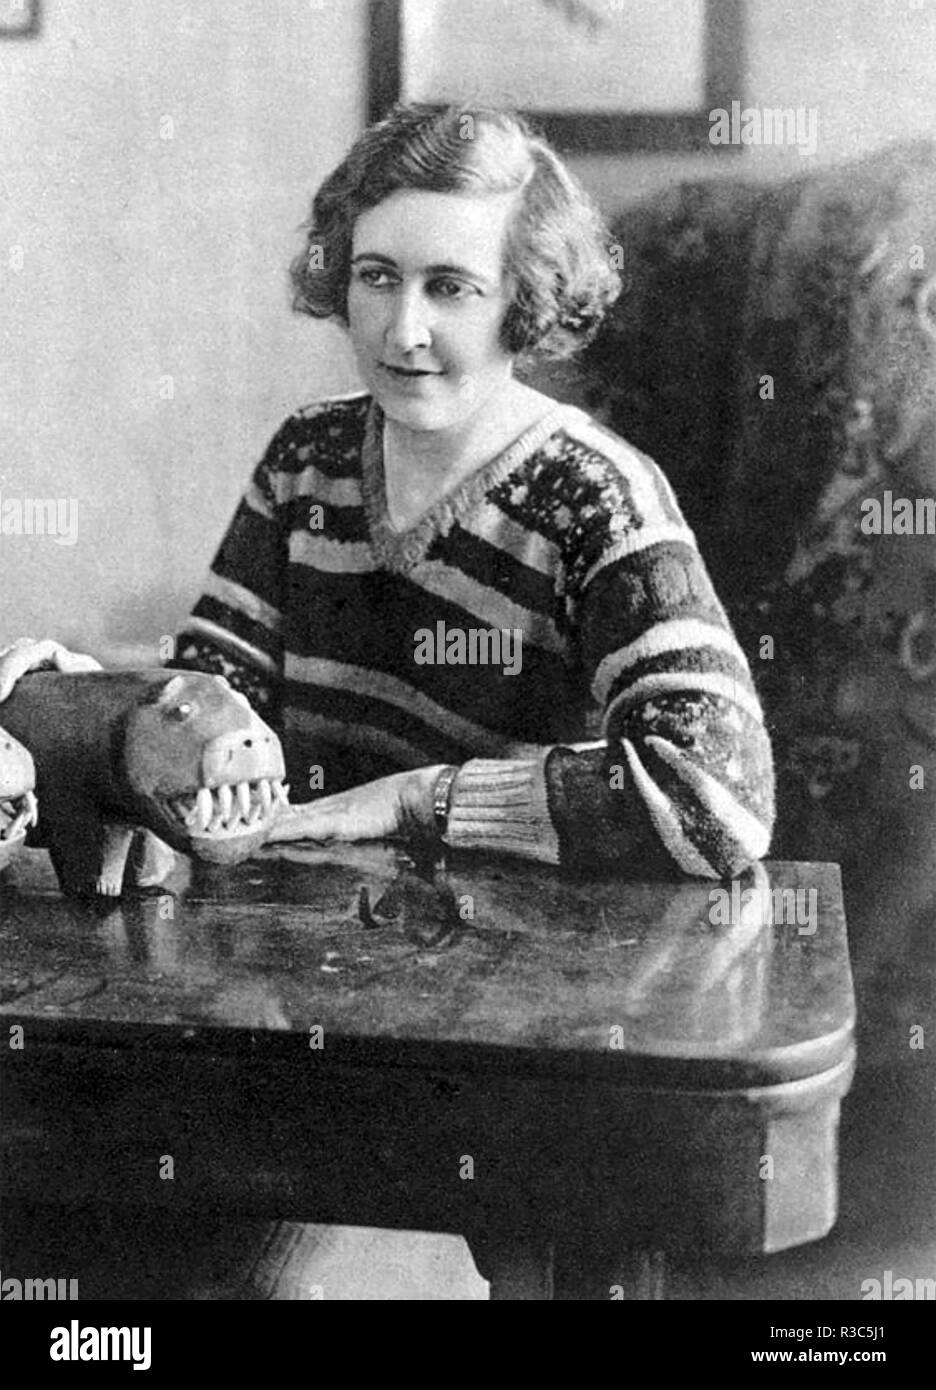 AGATHA CHRISTIE (1890-1976) English author about 1930 - Stock Image